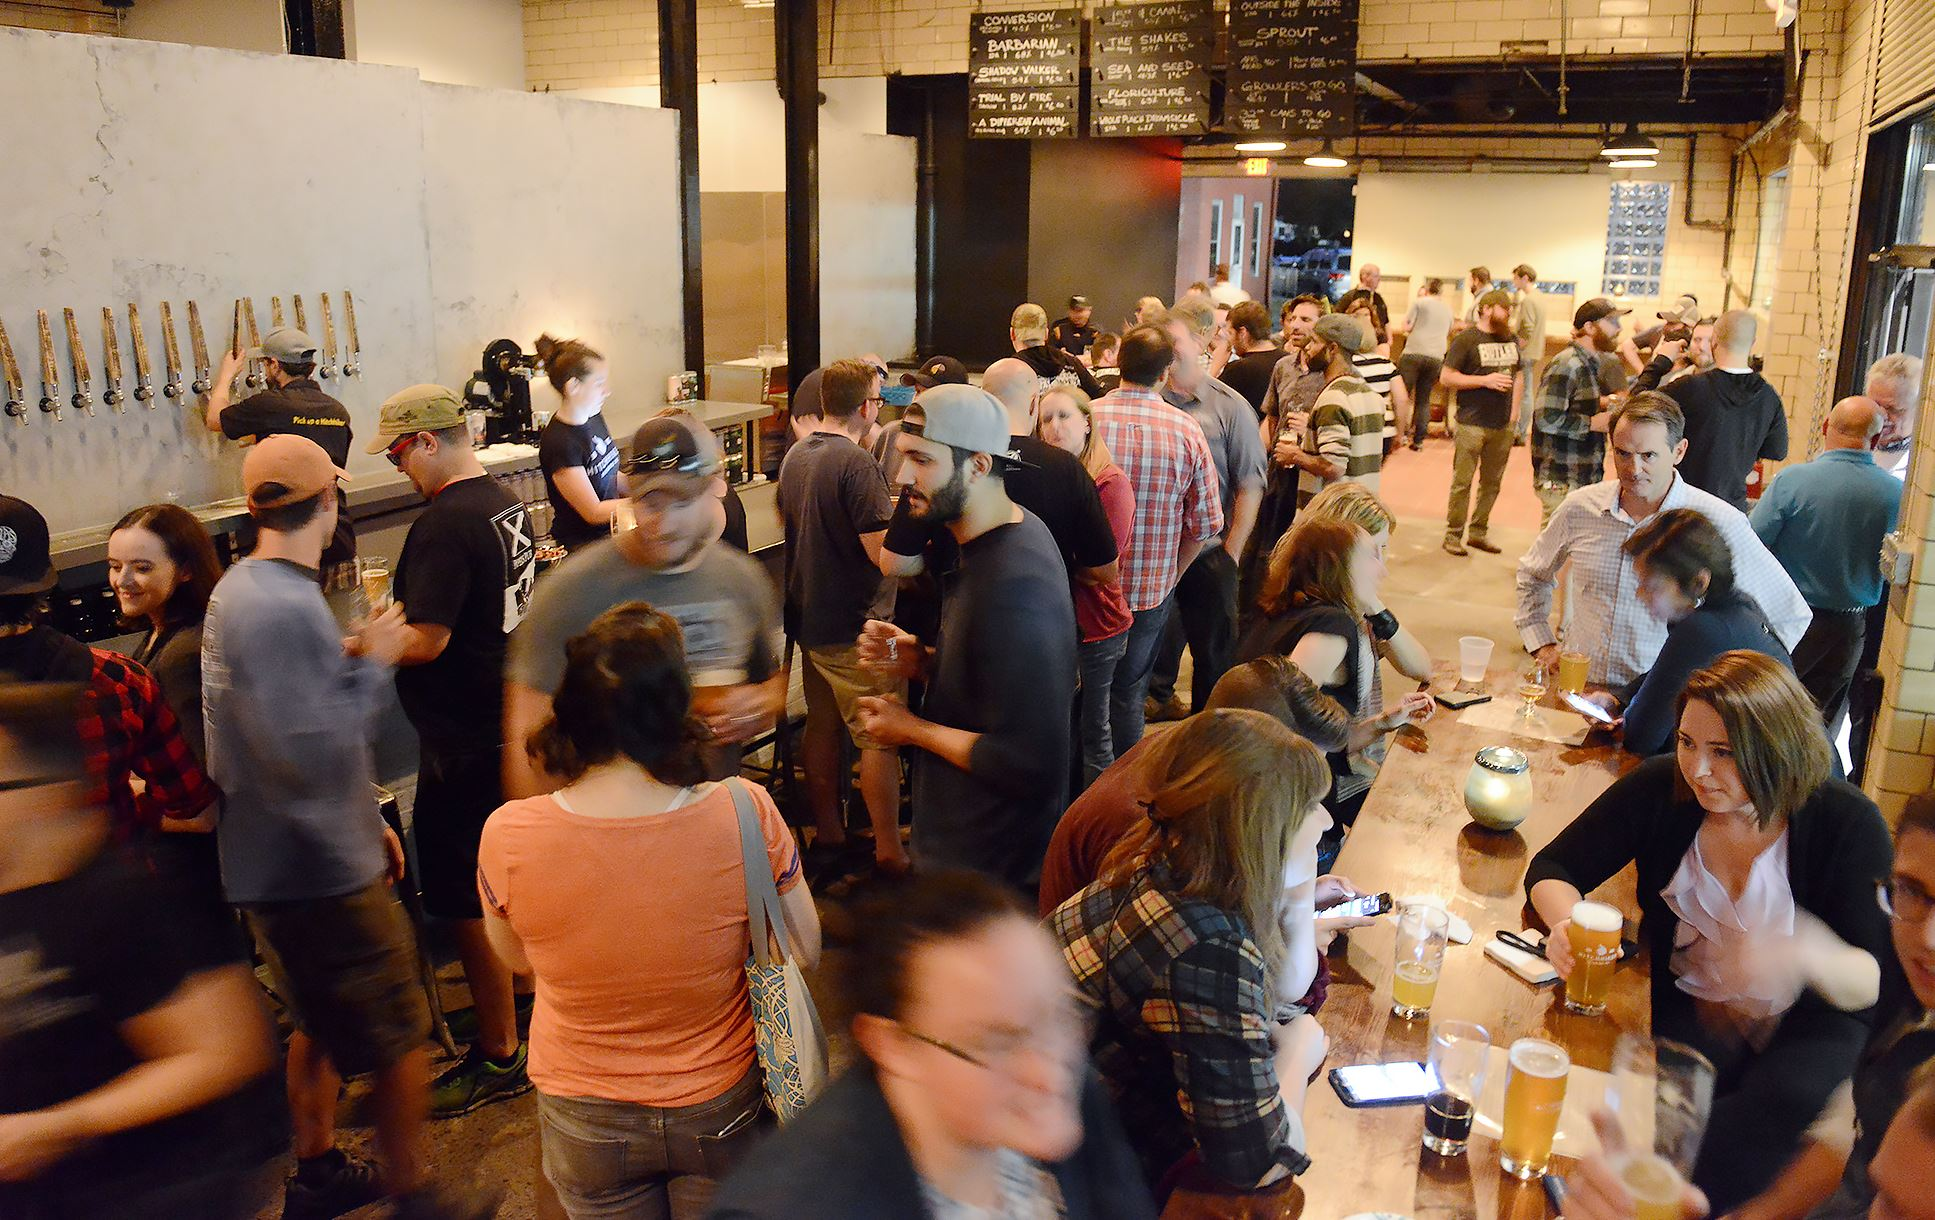 20170906rldHitchhiker04-2 Hitchhiker Brewing Company celebrates the opening of its second location with a soft launch on Sept. 6, 2017, in Sharpsburg.